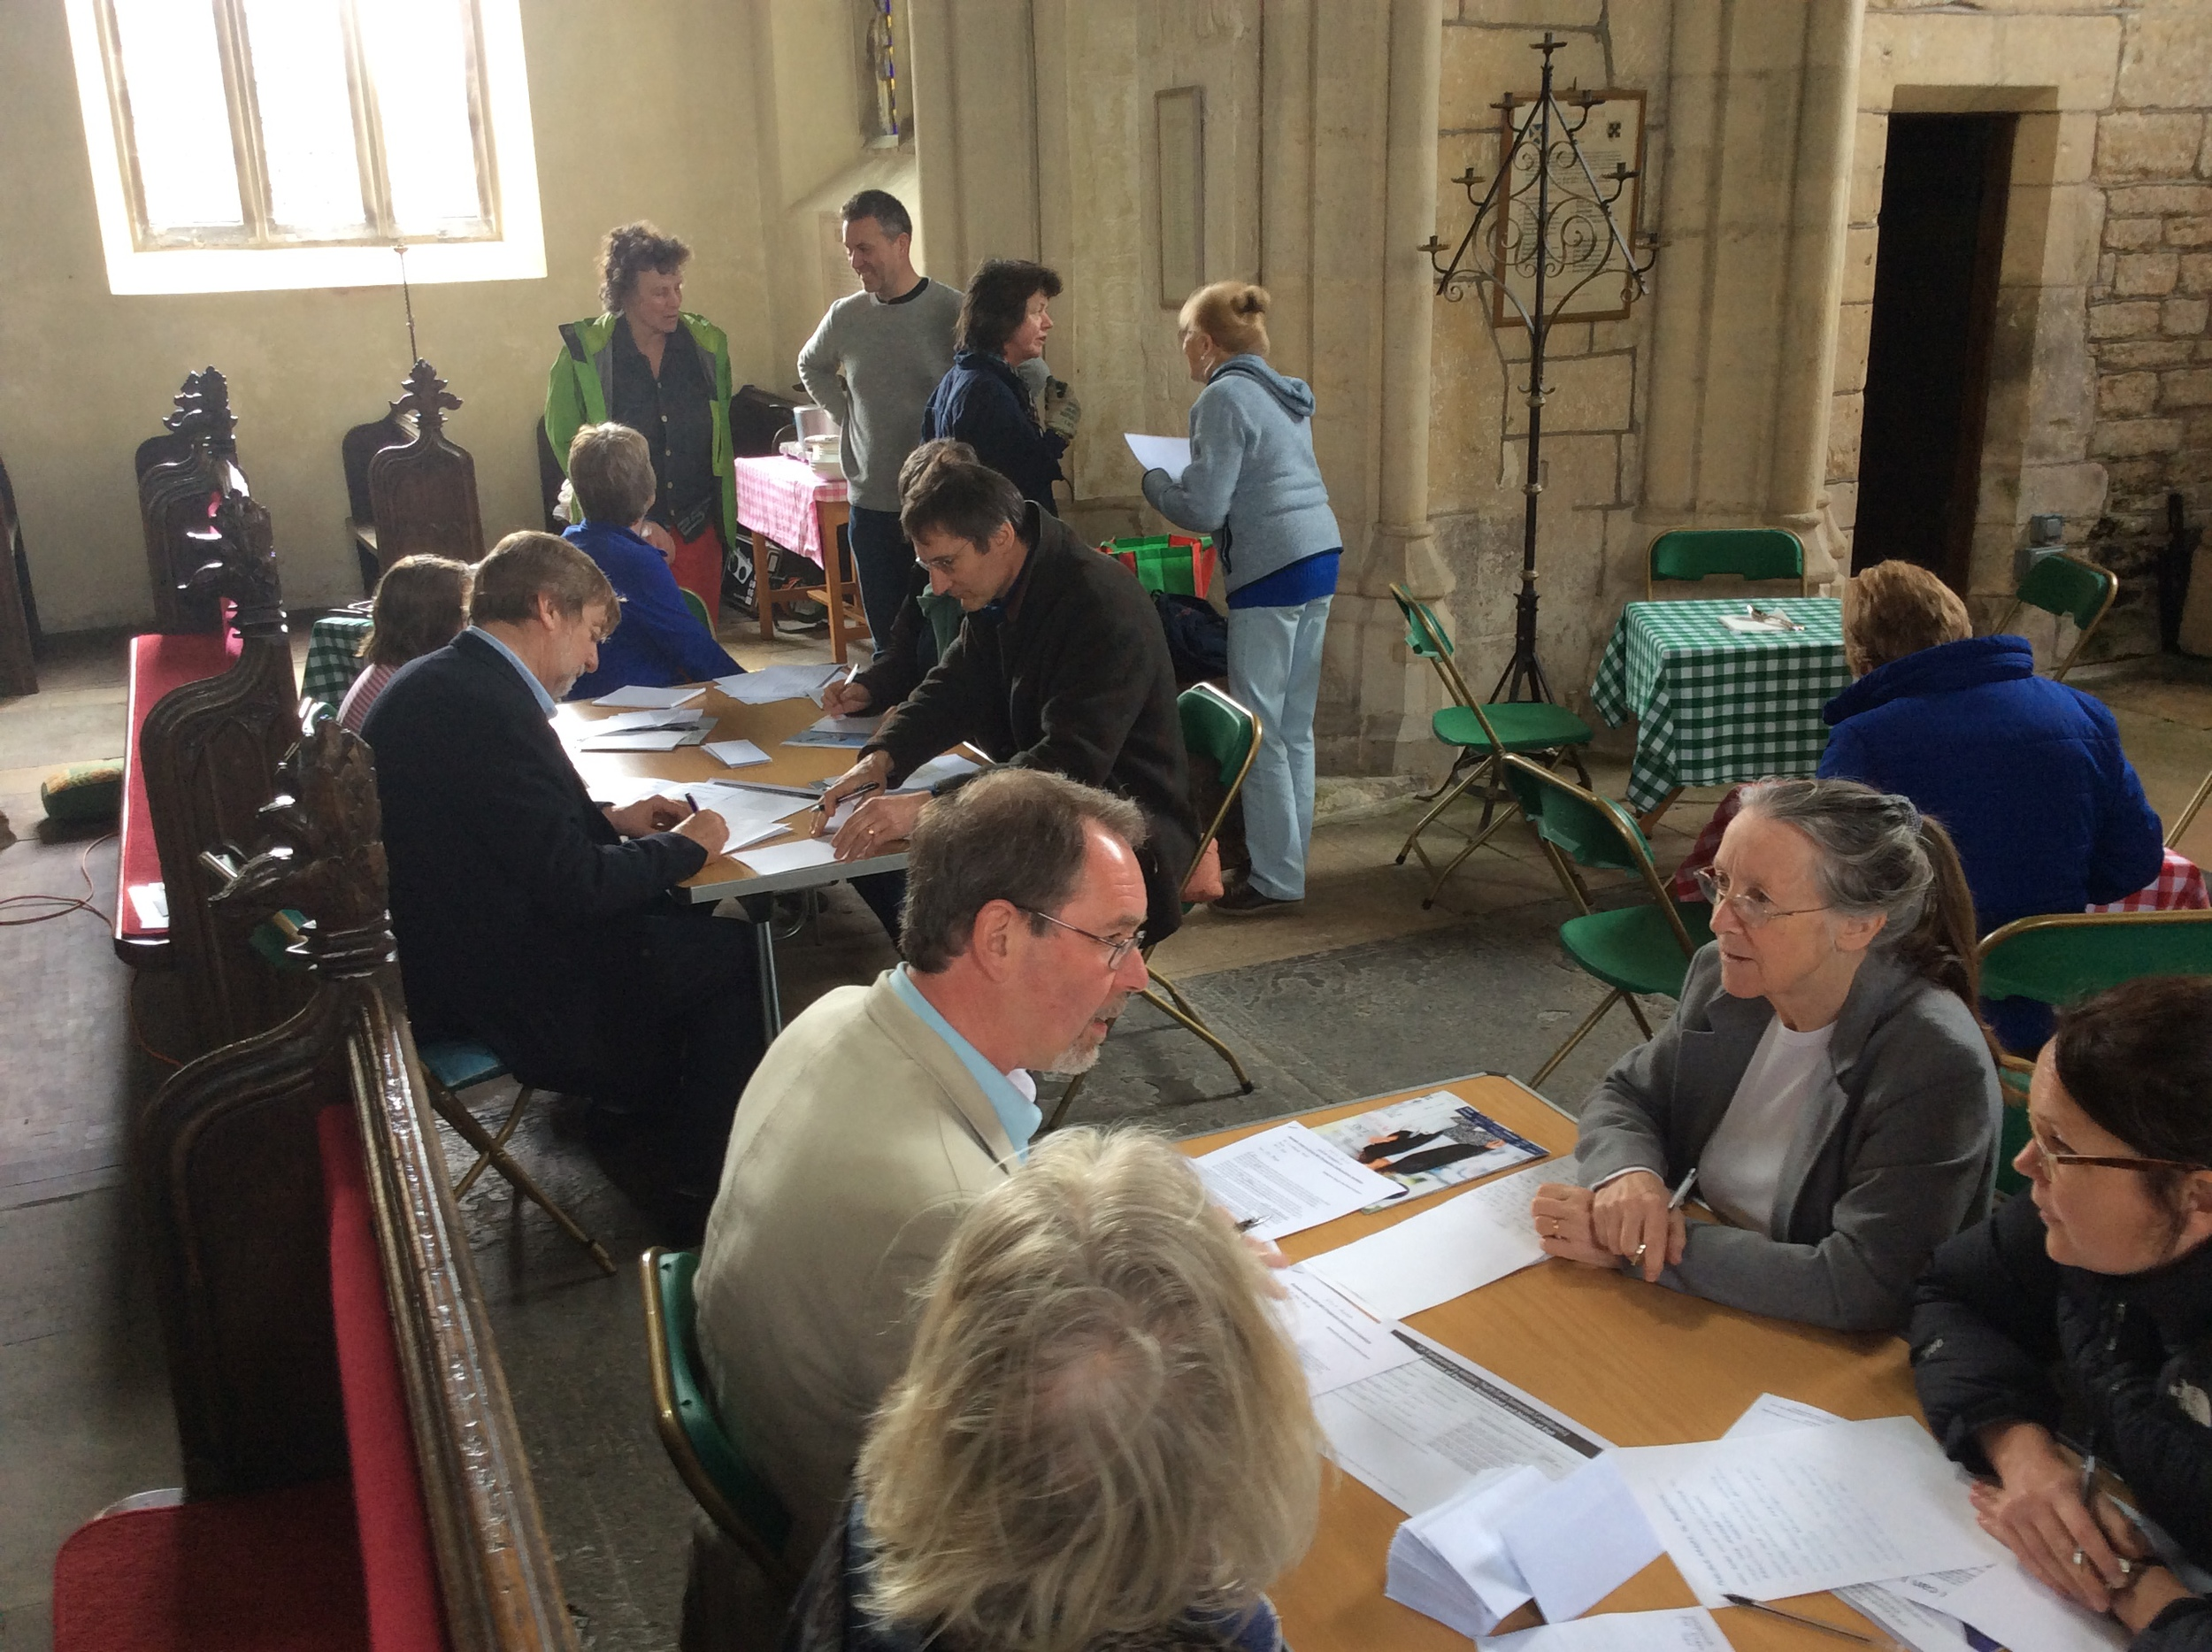 A recent Climate Write-In held at a supporting church in Gloucestershire.